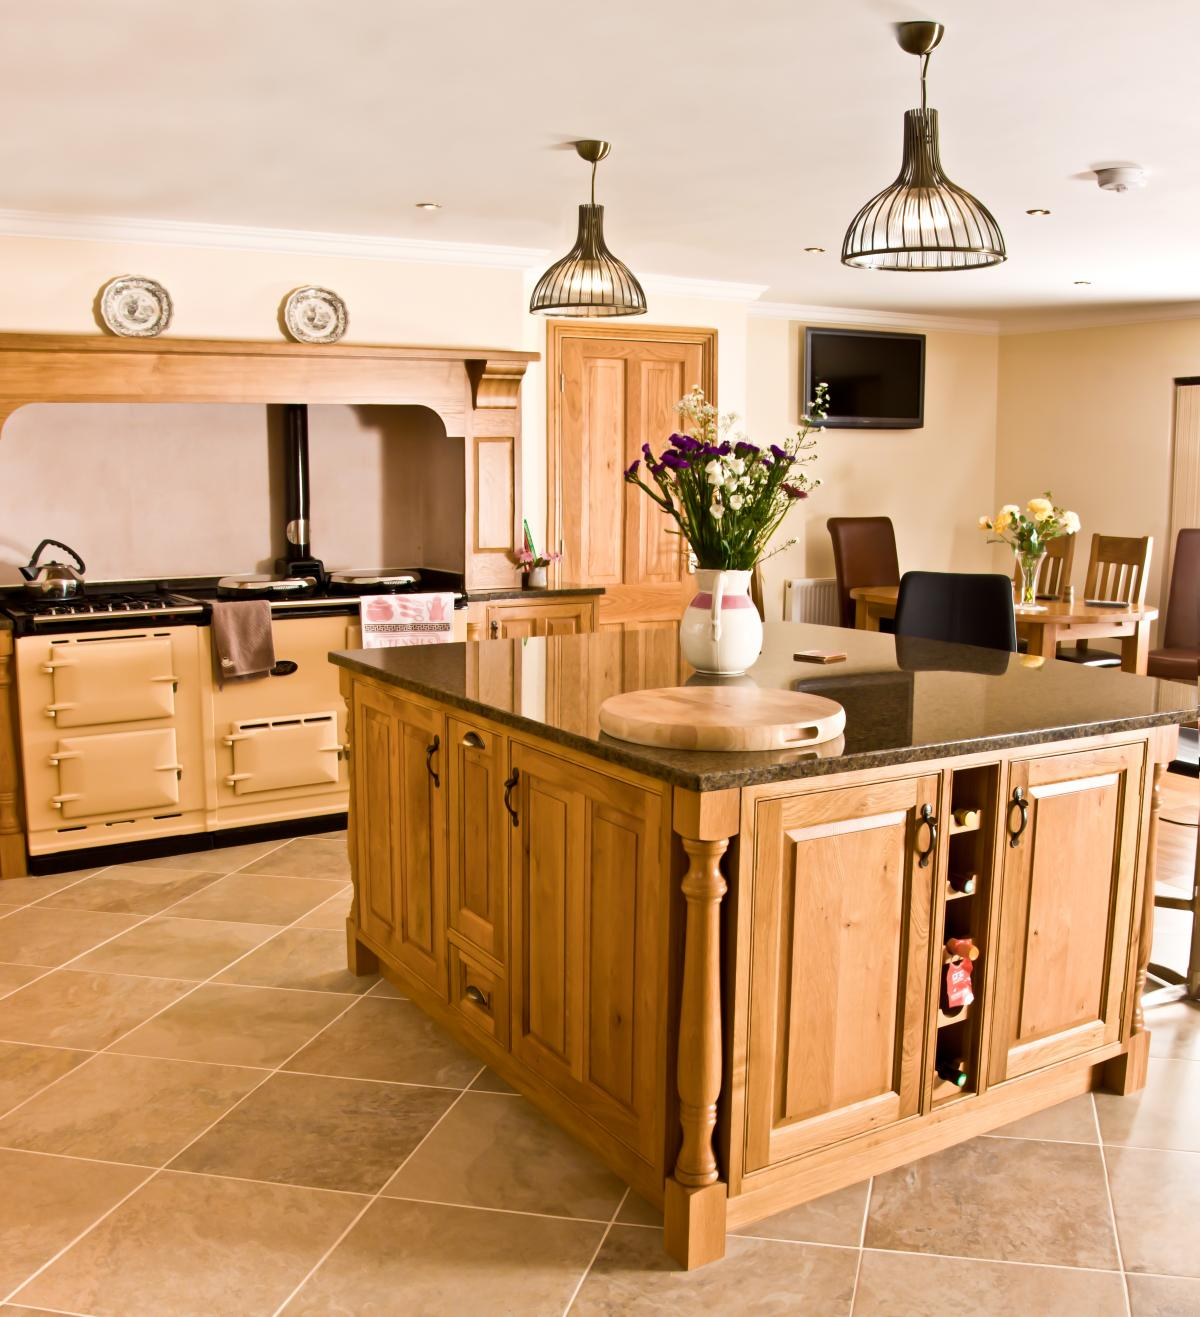 Mark Stone's Welsh Kitchens